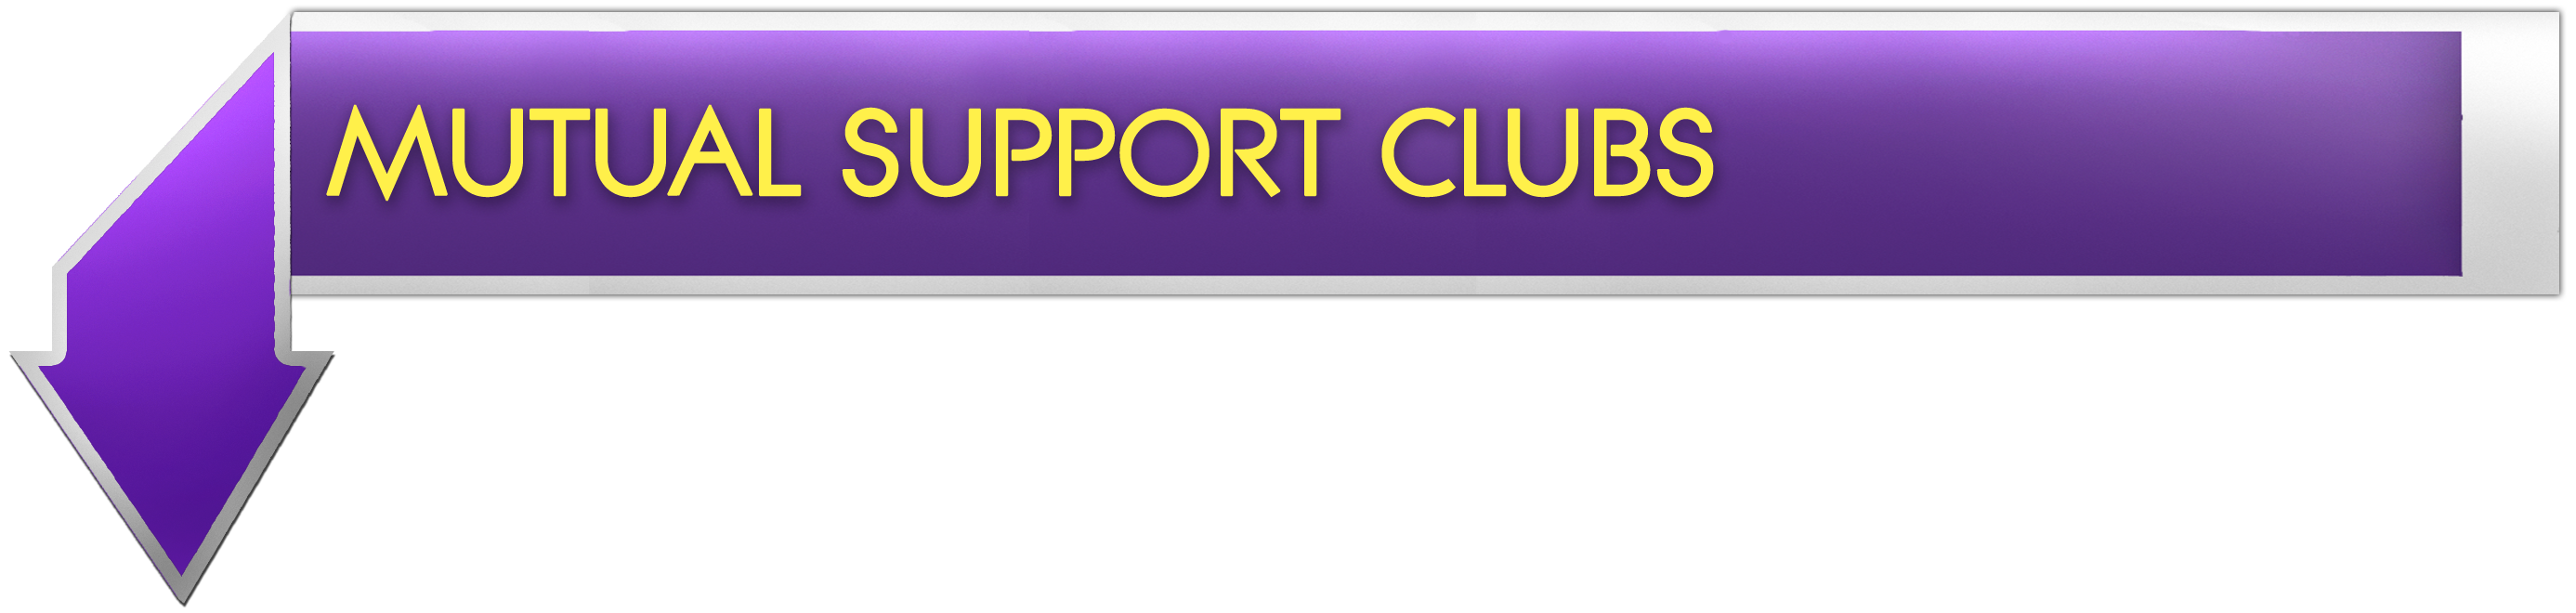 Support Clubs in the Greenville New Home Area of NC